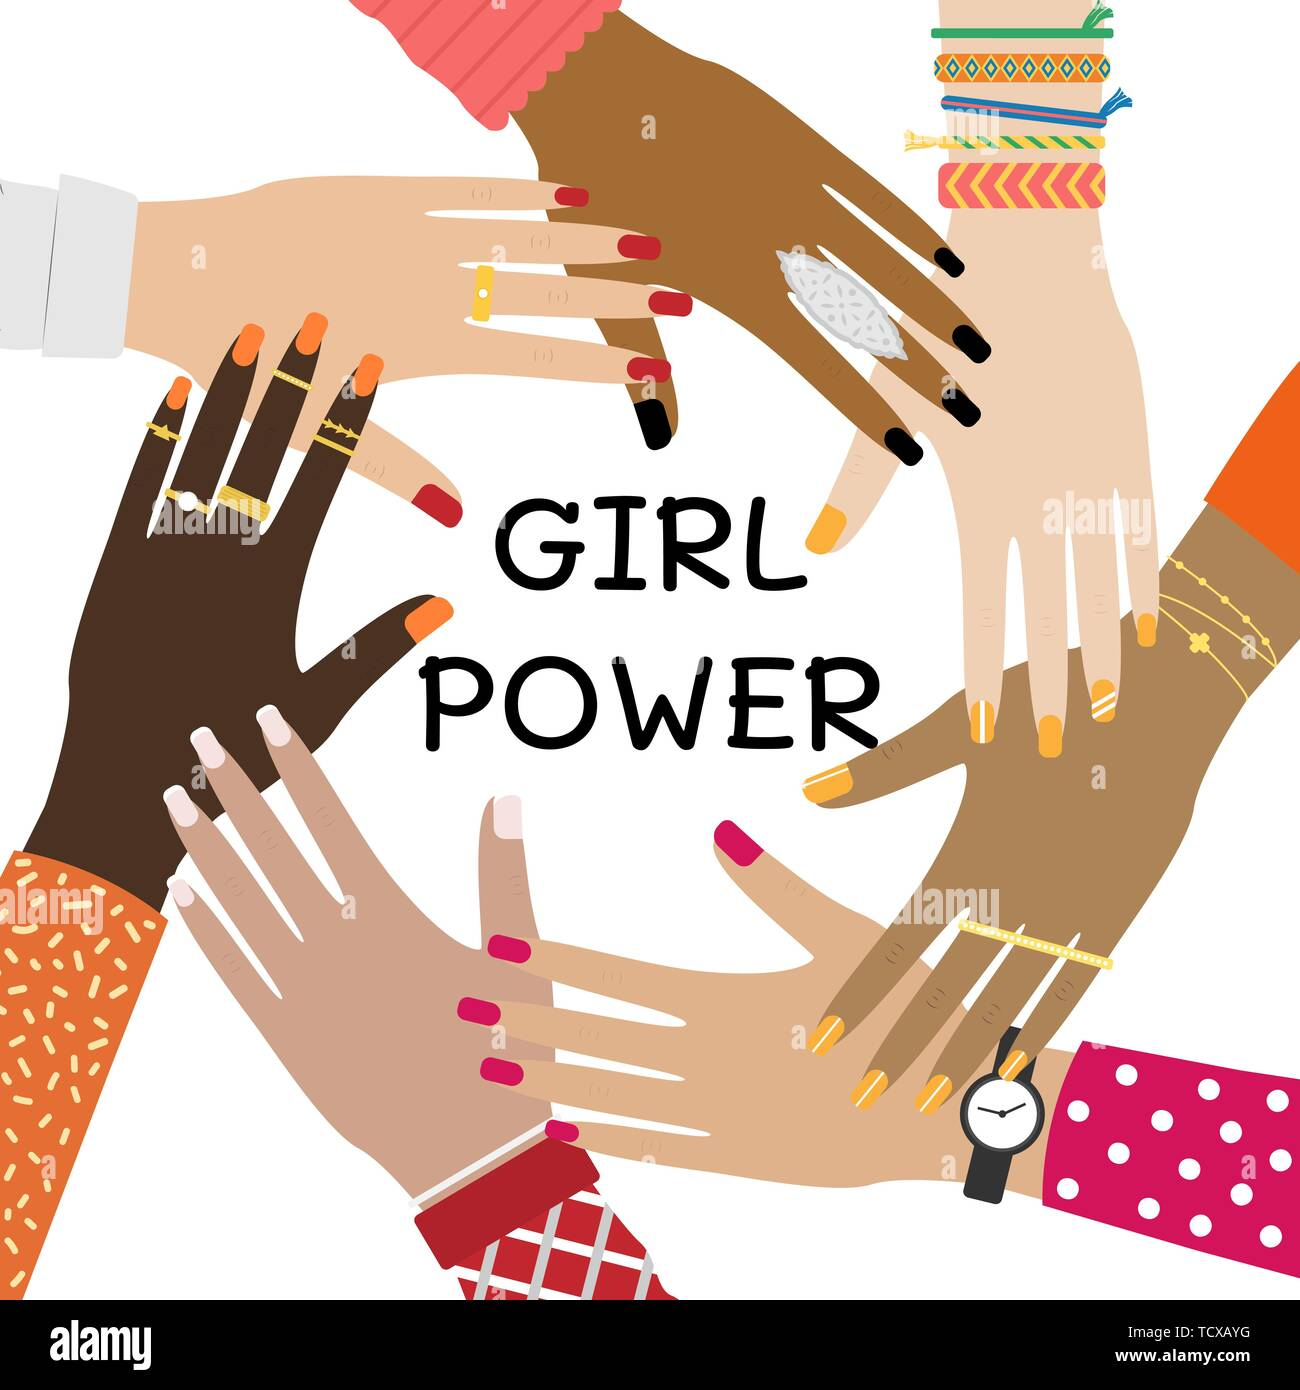 Hands of a diverse group of people putting together. Concept of togetherness and teamwork. Girl power. Stock Vector